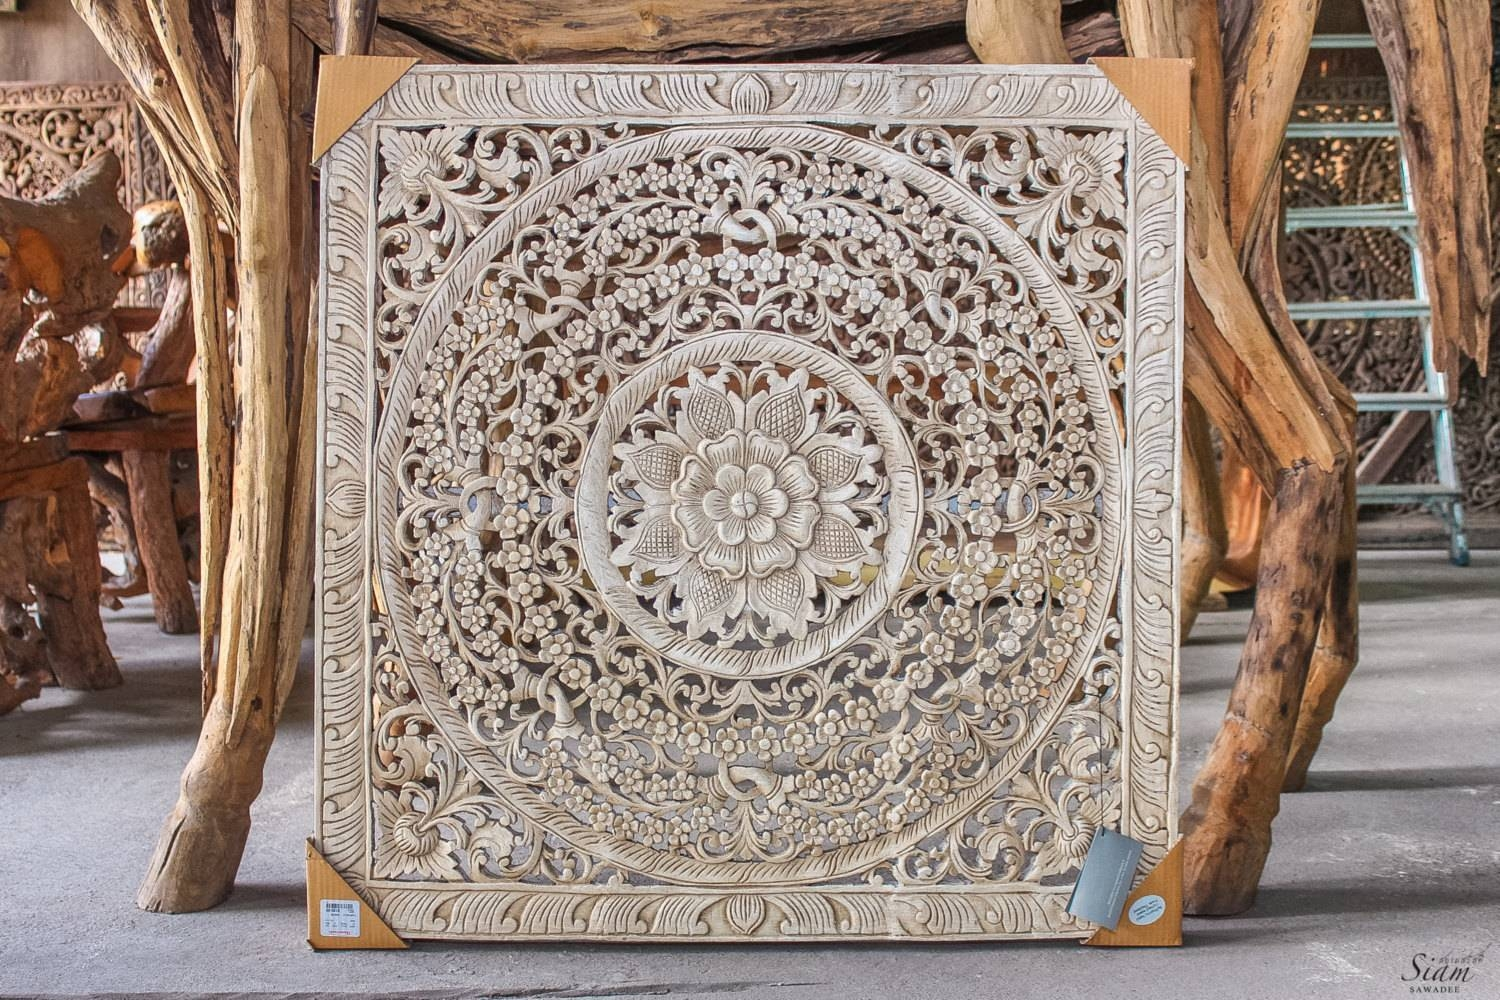 Wood Carved Wall Art | Himalayantrexplorers Inside Most Popular White Wooden Wall Art (View 17 of 20)